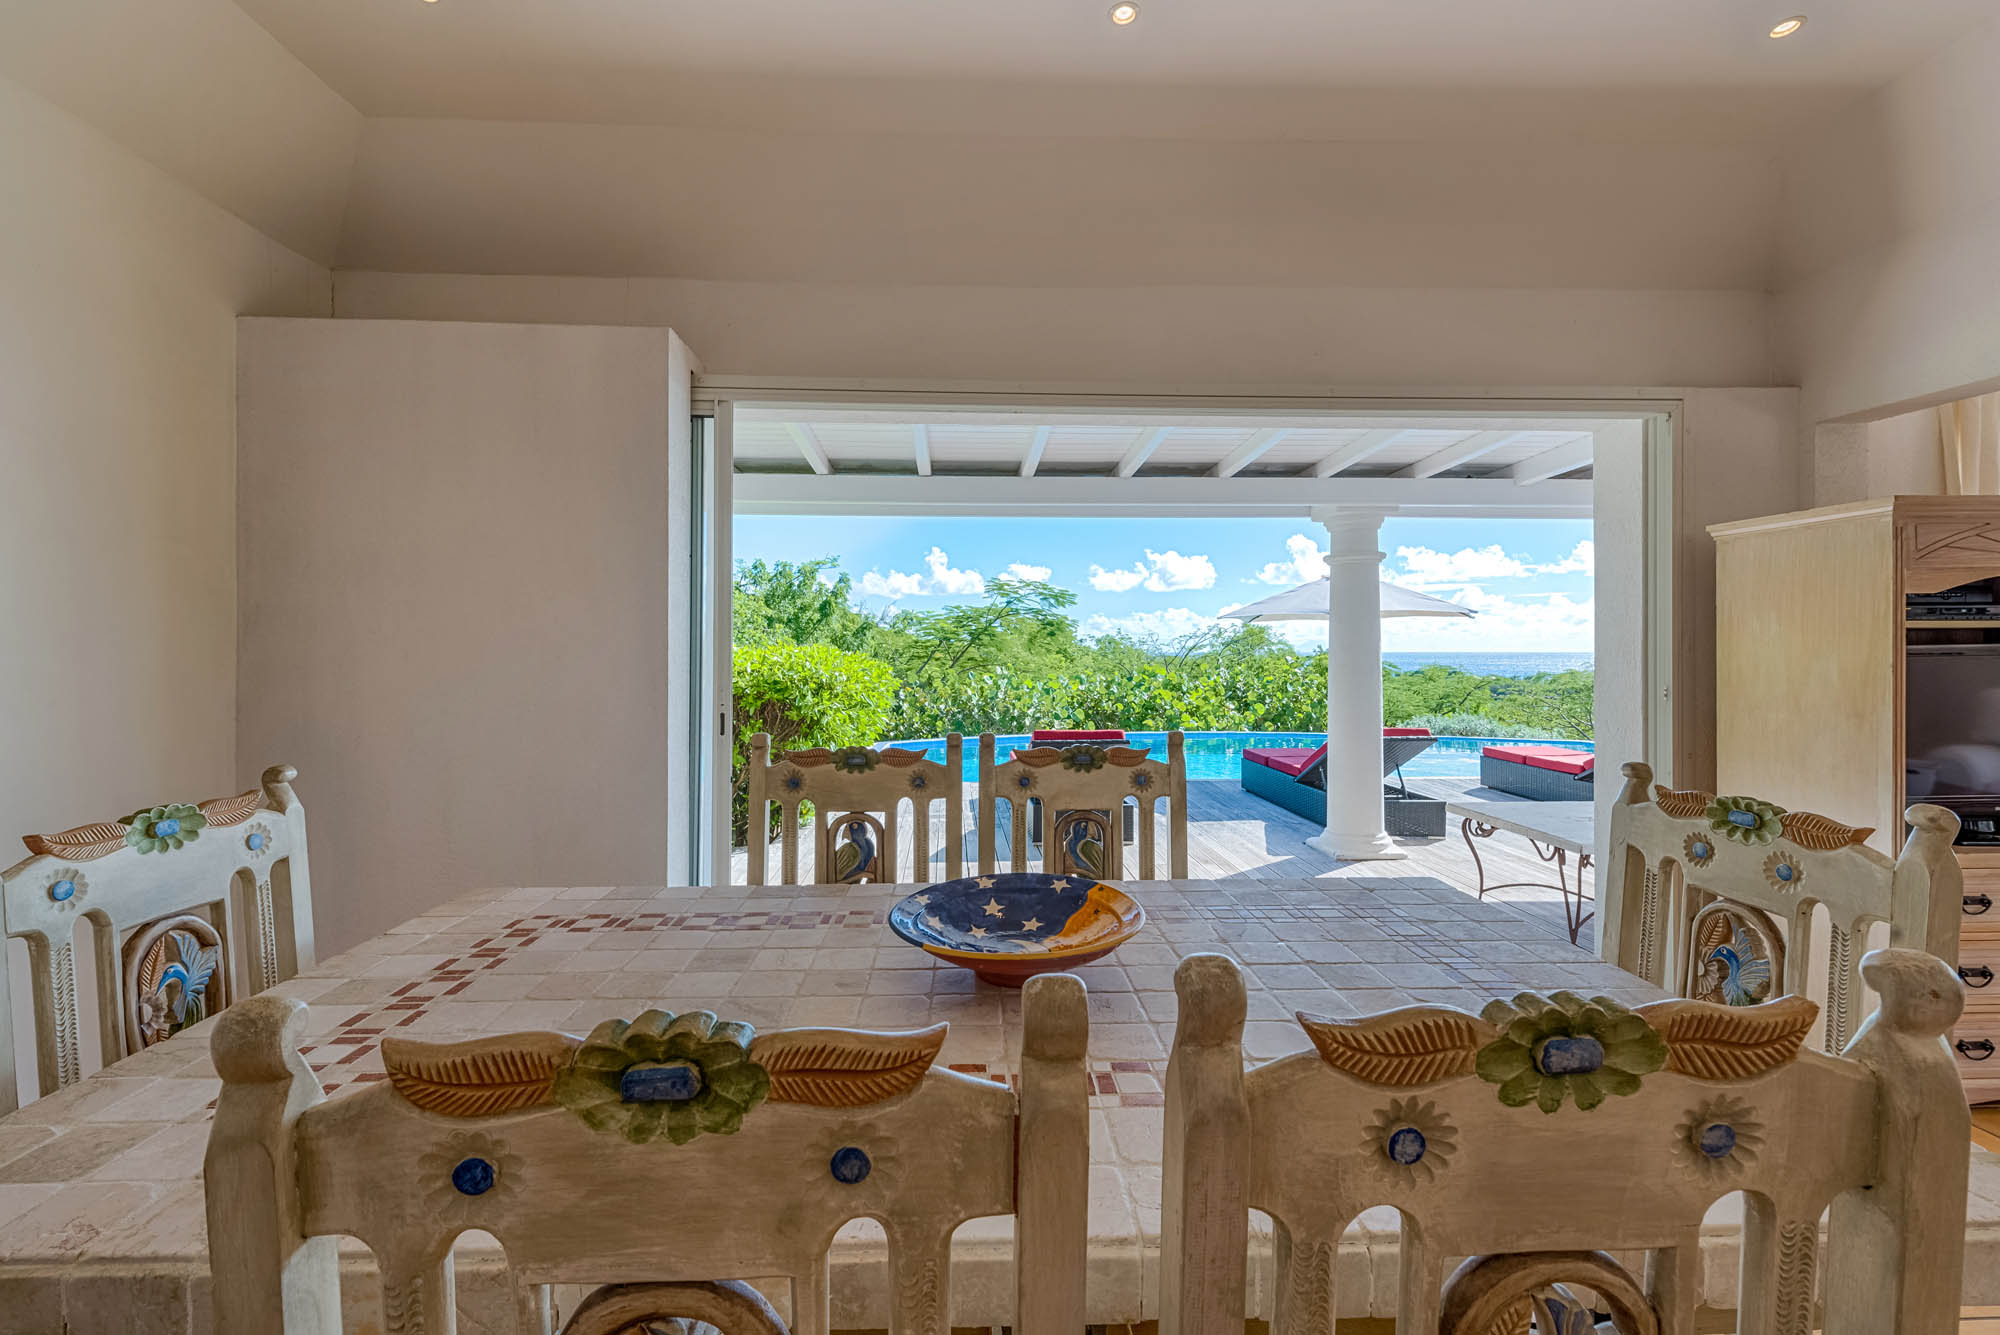 Prepare some cocktails and enjoy Caribbean life at Villa Little Provence, Baie Longue, Terres-Basses, Saint Martin, Caribbean.